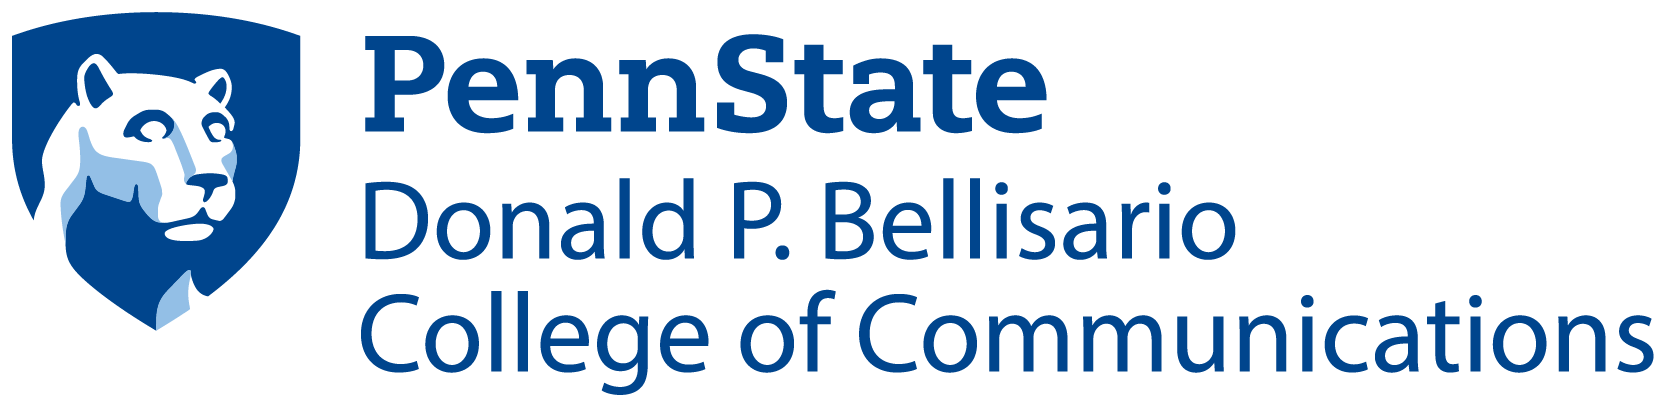 The Donald P. Bellisario College of Communications at Penn State Logo